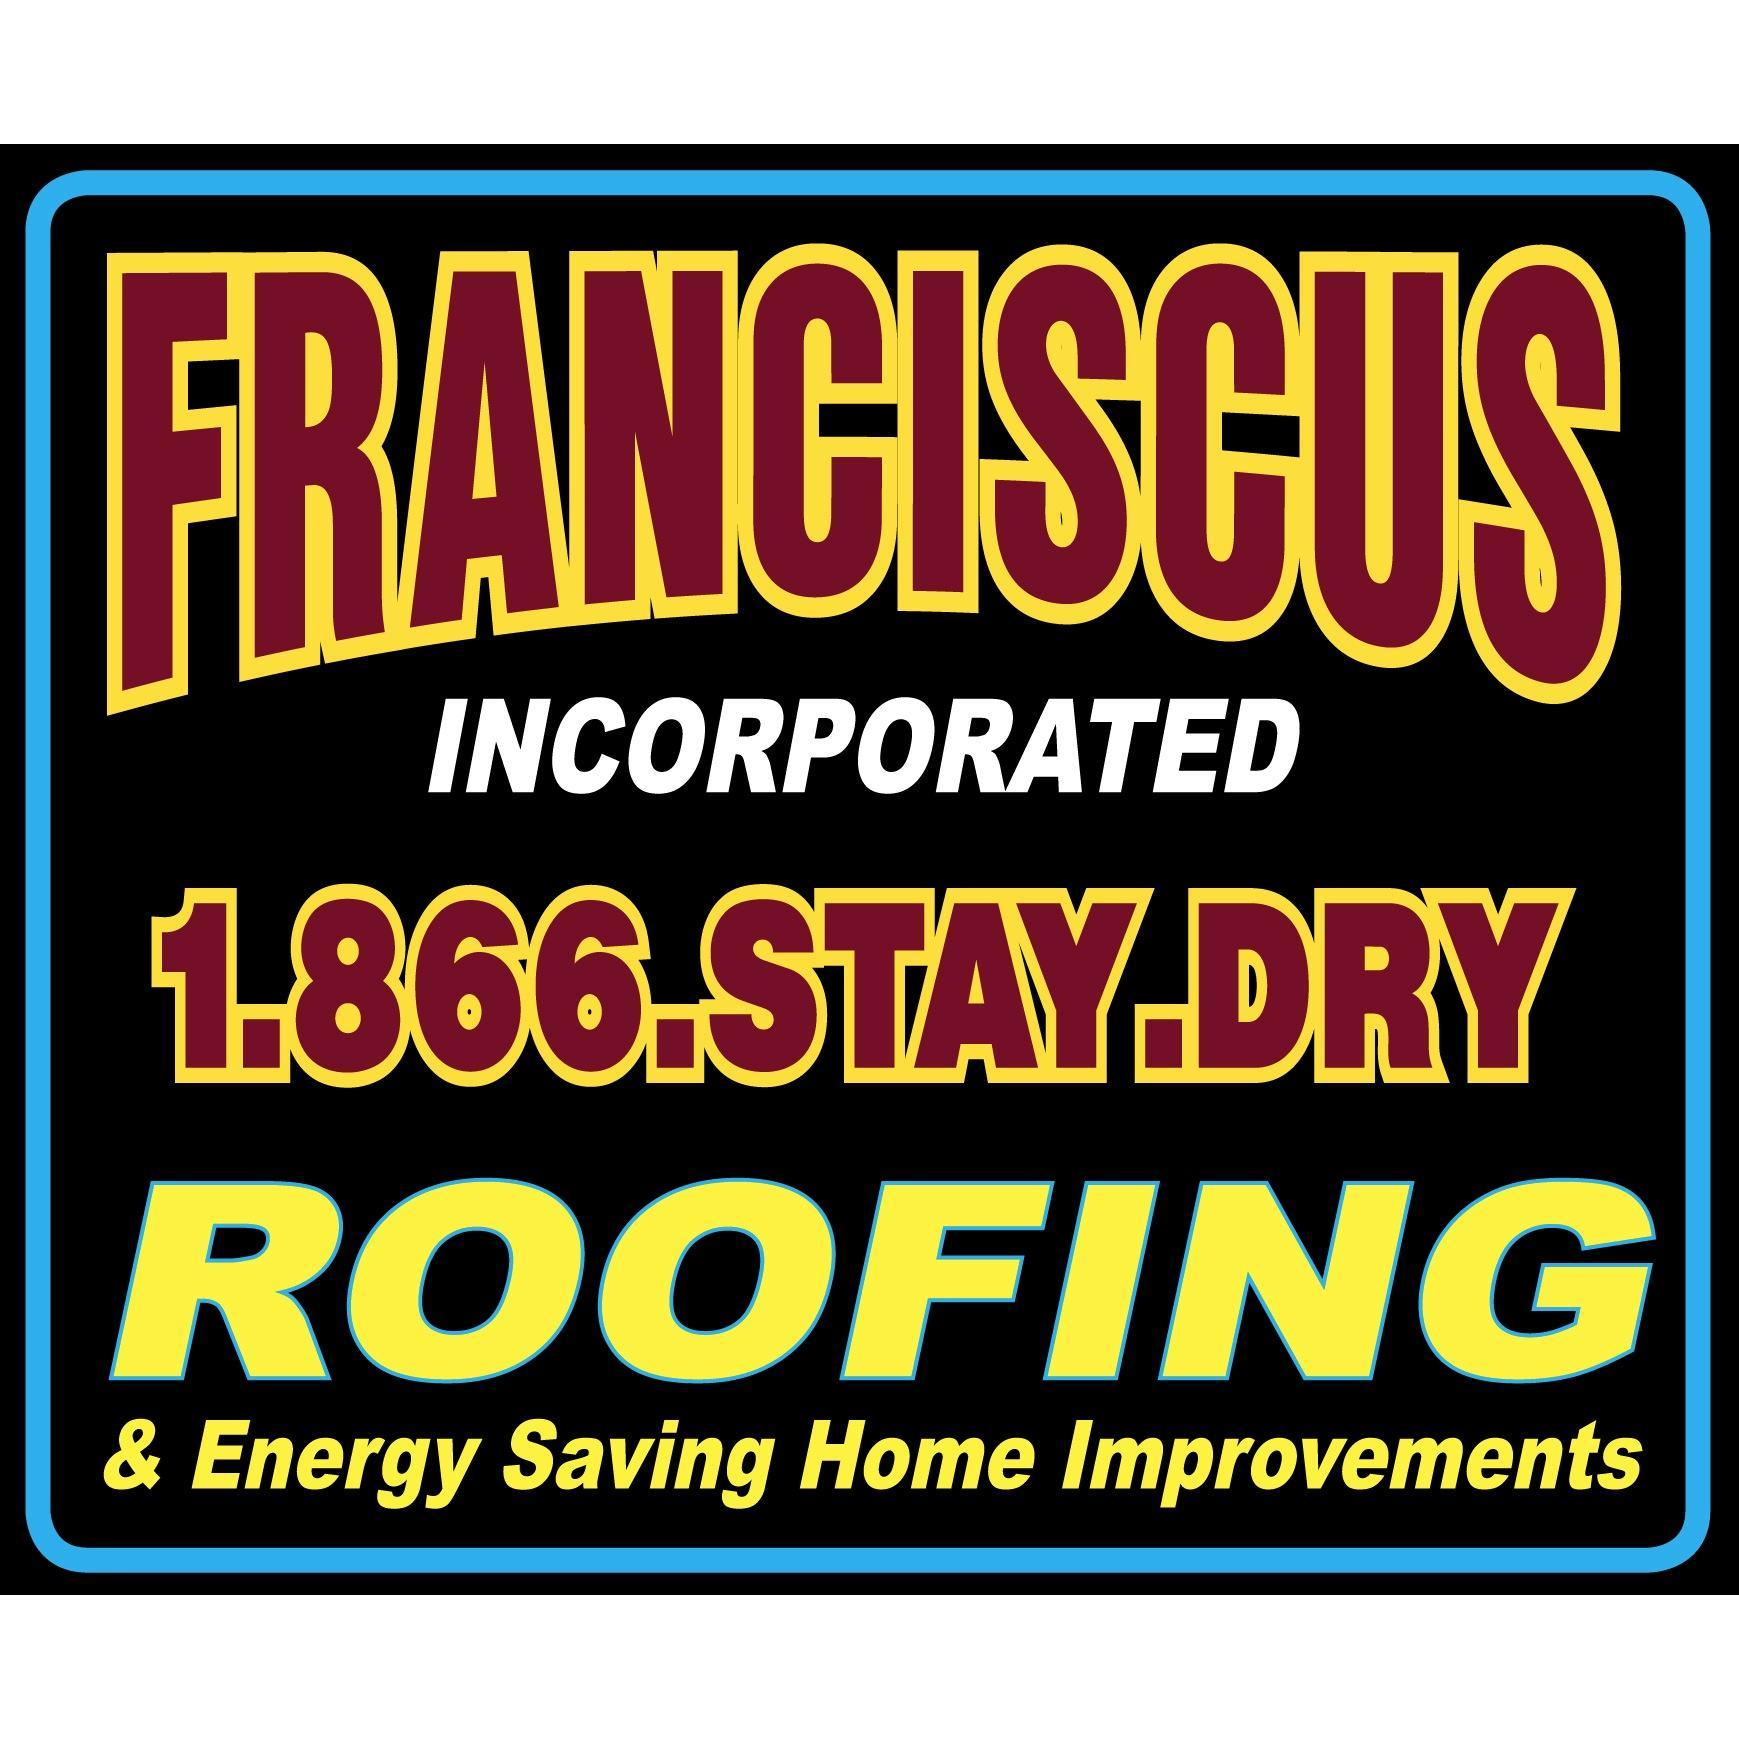 Franciscus Roofing - Westlake, OH - Roofing Contractors